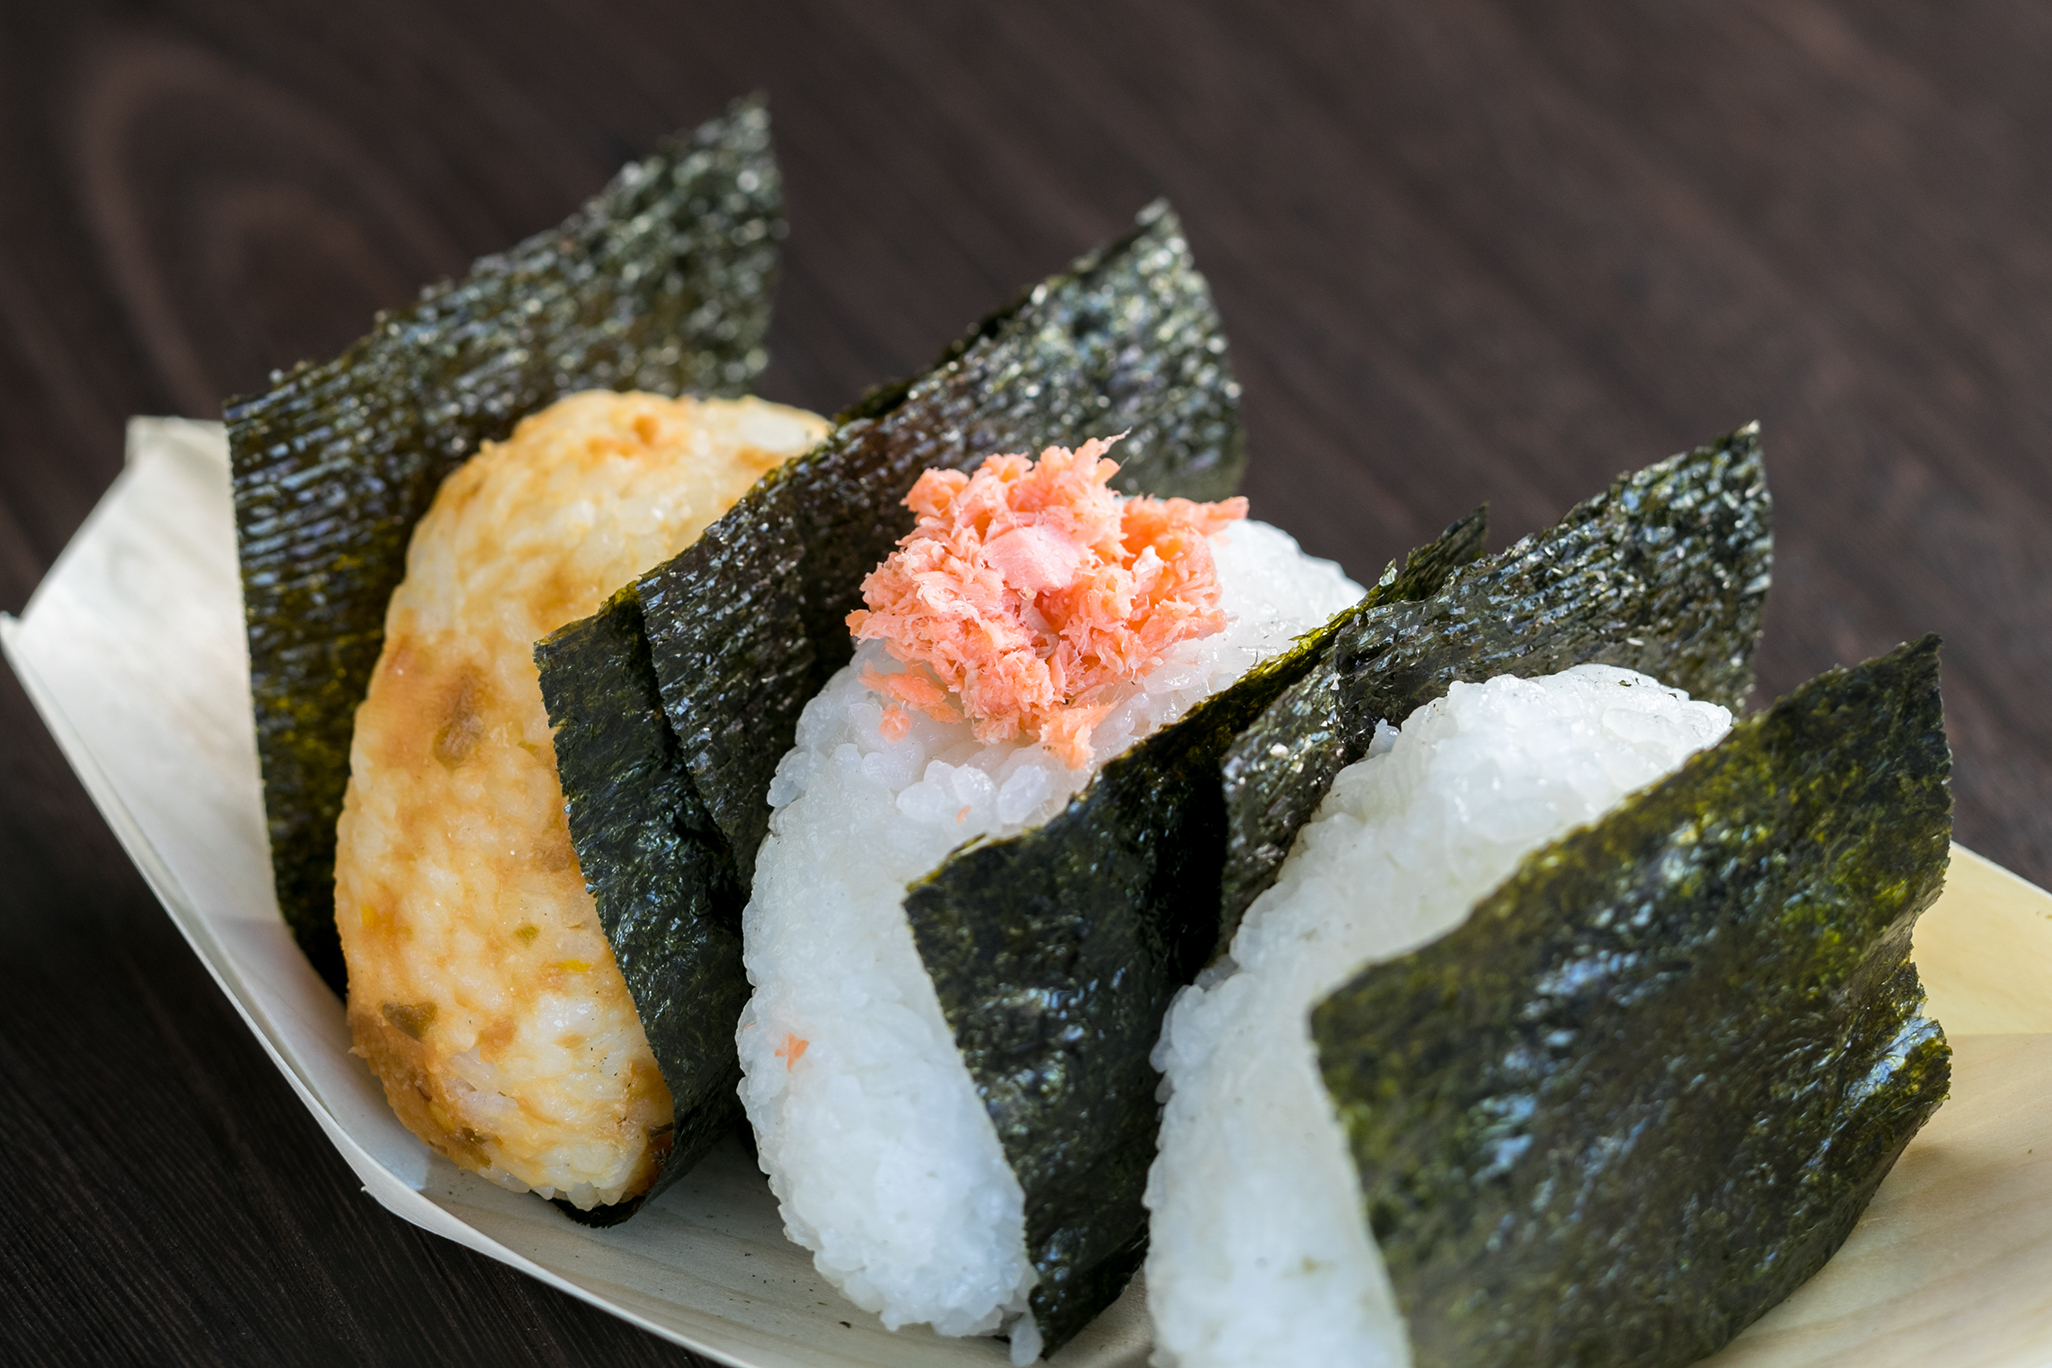 Make Riceball 'Onigiri' With Local Mom